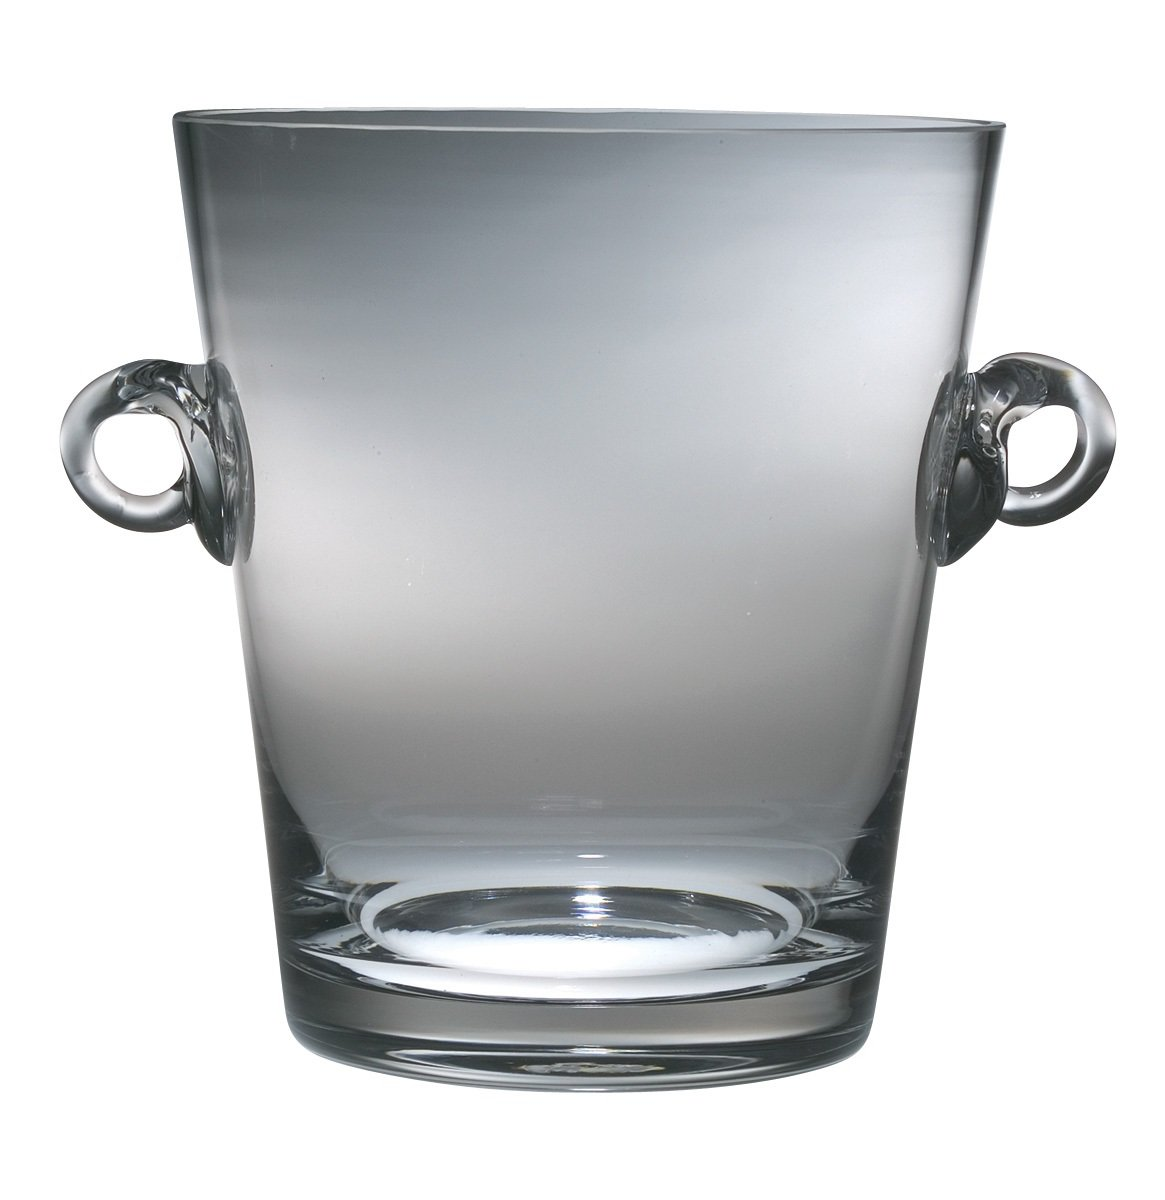 Majestic Gifts European Handmade Ice Bucket/Cooler, Large, Clear